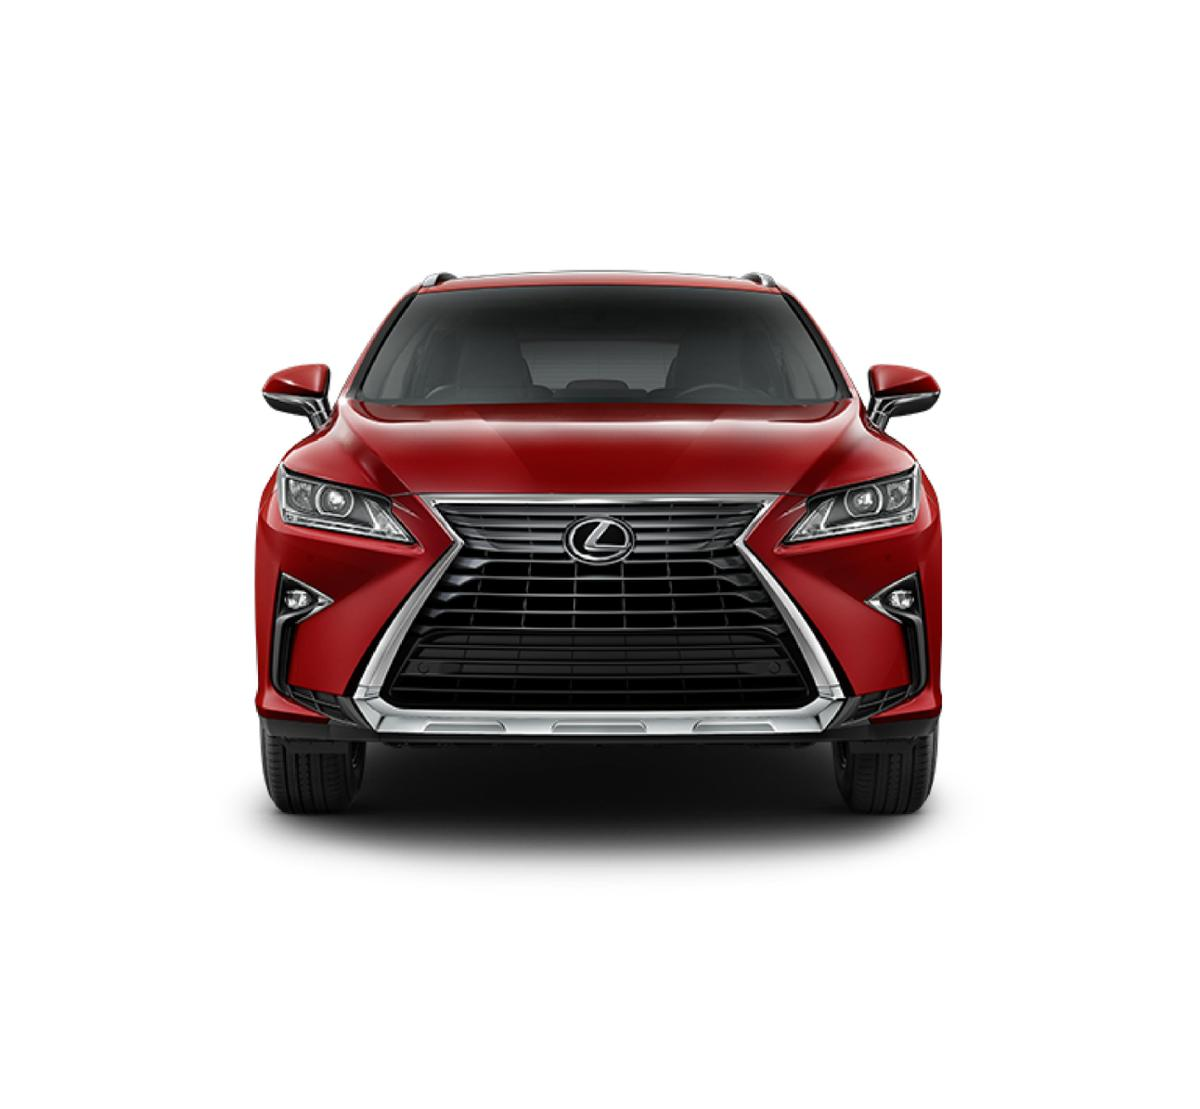 New 2019 Lexus RX 350L (Matador Red Mica) for Sale in Houston. Pearland & League City. TX